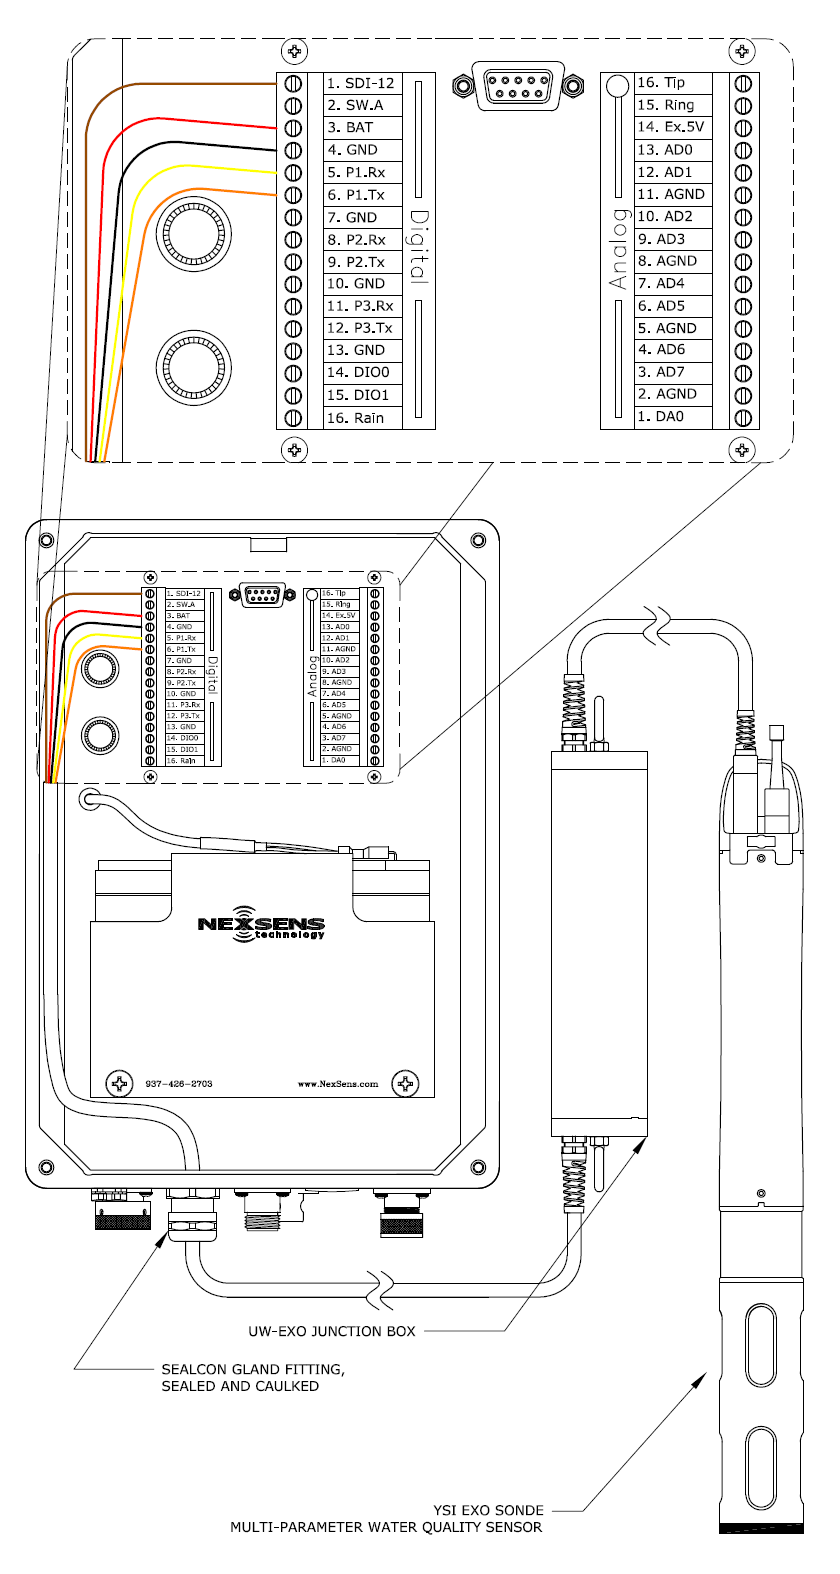 Pioneer Deh 4300ub Wiring Diagrams Real Diagram 3400ub 11 16 Pin X3600ui Car Speaker Audio